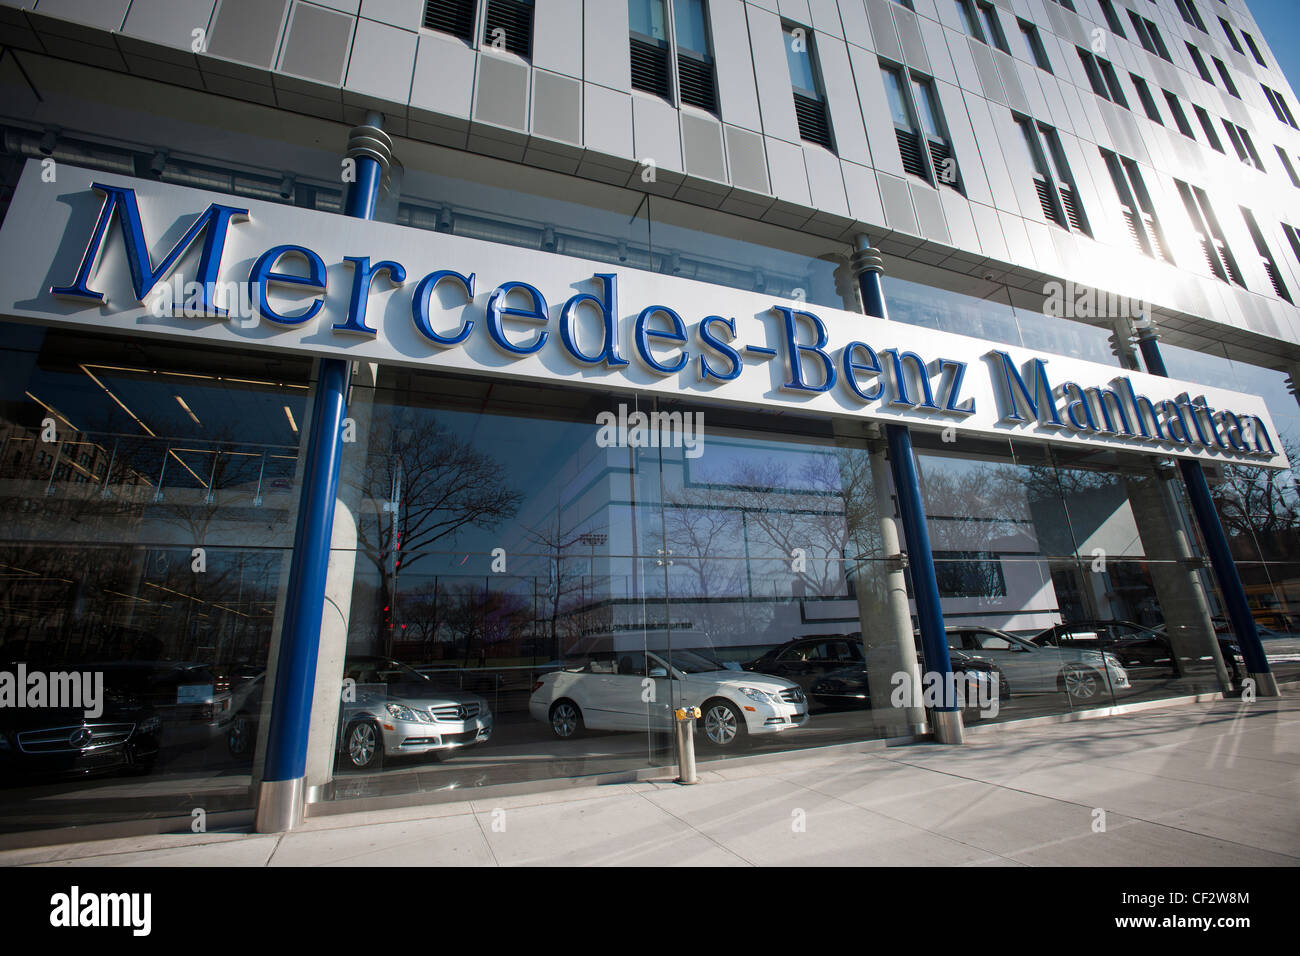 The Flagship Mercedes Benz Manhattan Dealership Is Seen In Its New Building  In The Hellu0027s